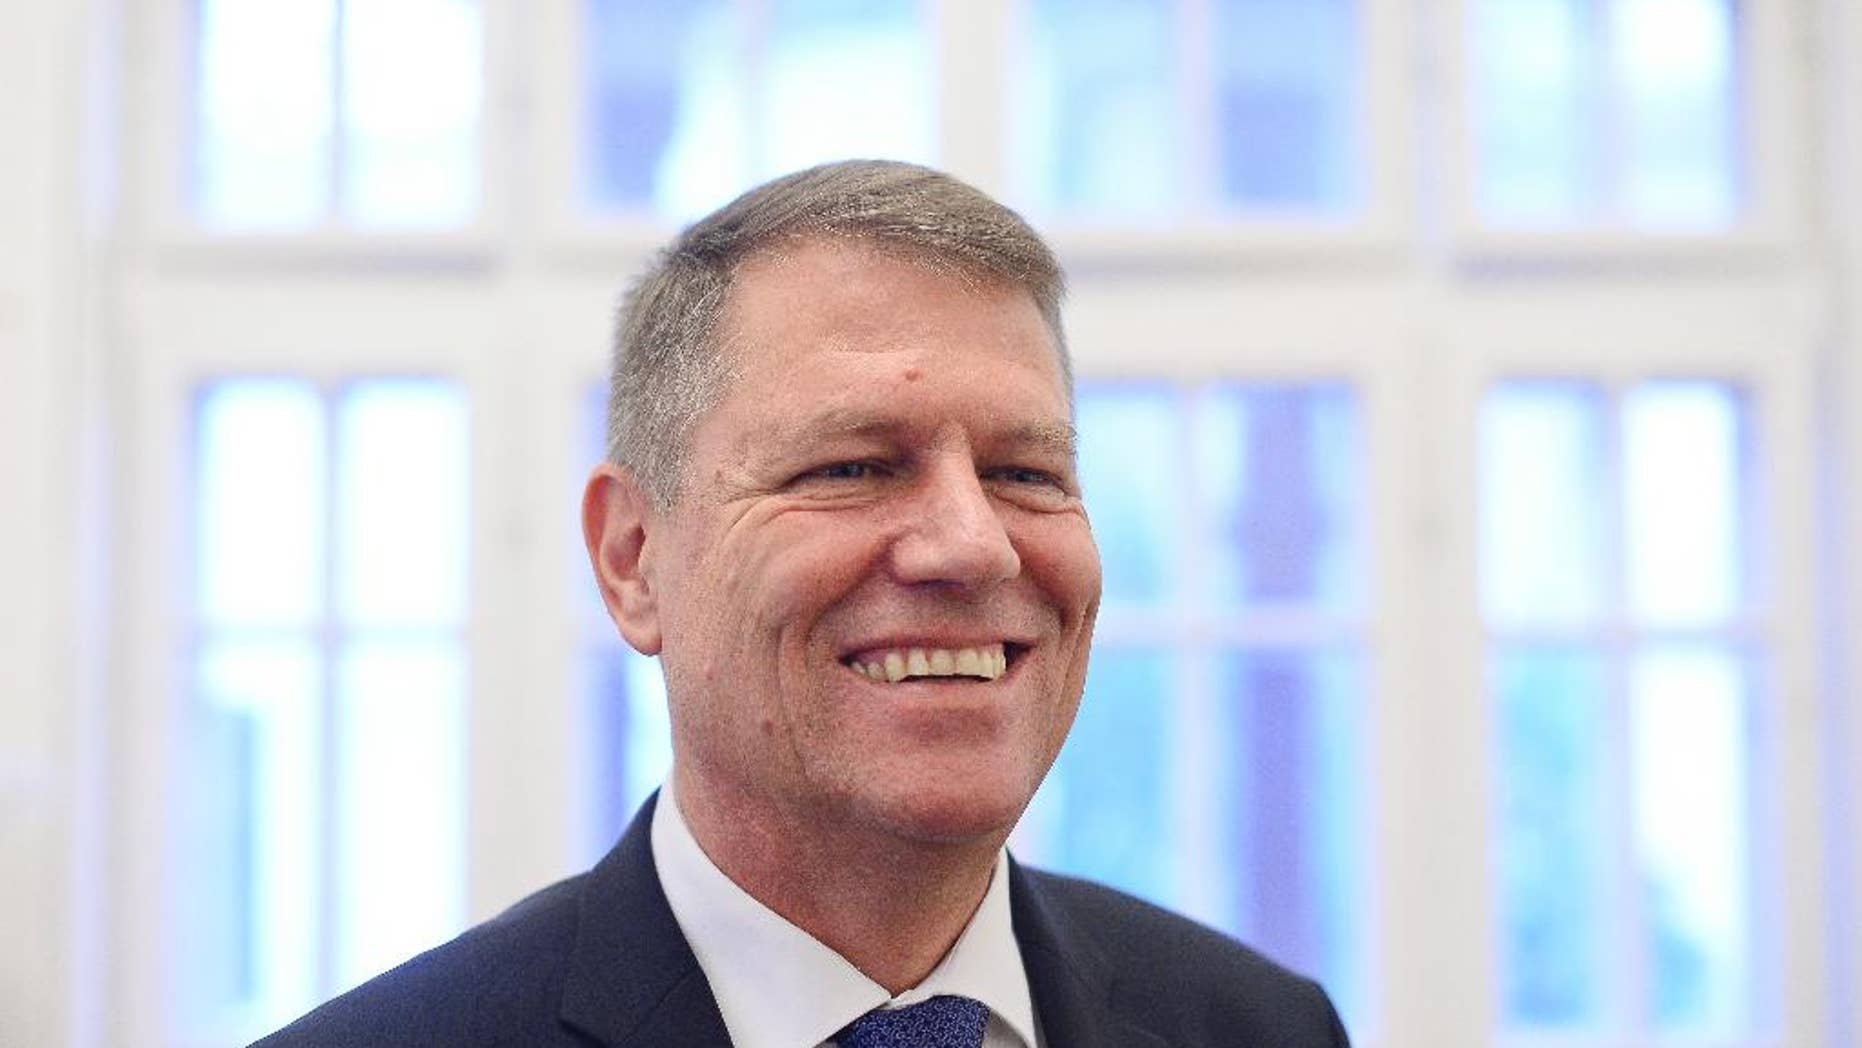 """Klaus Iohannis, leader of Romania's center-right Liberals and mayor of the Transylvanian city of Sibiu, smiles while posing for a portrait, shortly after giving an interview to the Associated Press, on the first morning after exit polls in the presidential elections runoff in Bucharest, Romania, Monday, Nov. 17, 2014. The ethnic German mayor who defeated Romania's Prime Minister Victor Ponta in a presidential runoff said his victory signaled """"a deep change"""" in Romania. (AP Photo/Octav Ganea, Mediafax) ROMANIA OUT"""